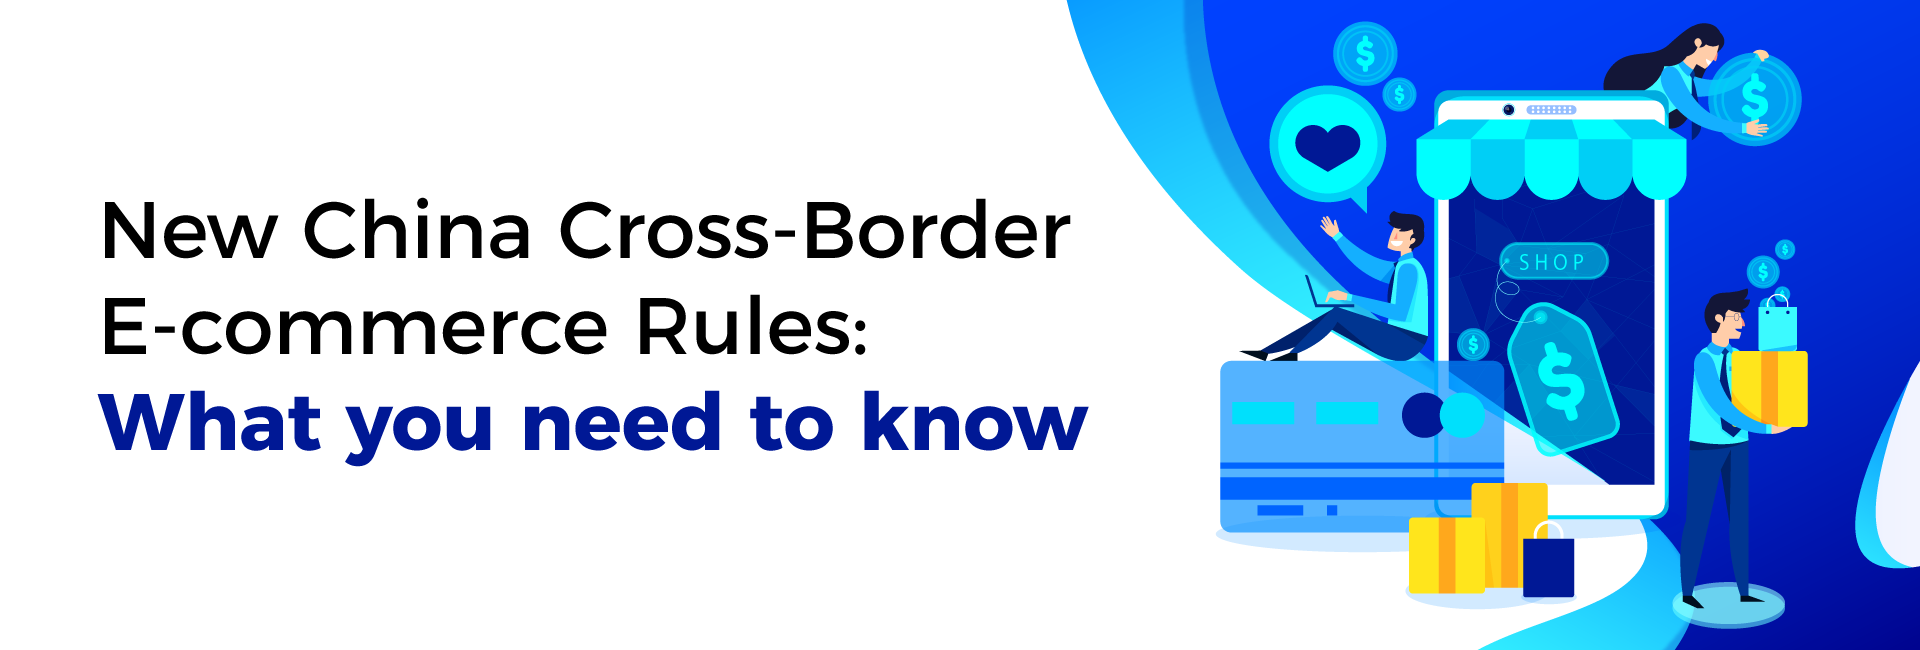 New China Cross-Border E-commerce Rules: What You Need to Know